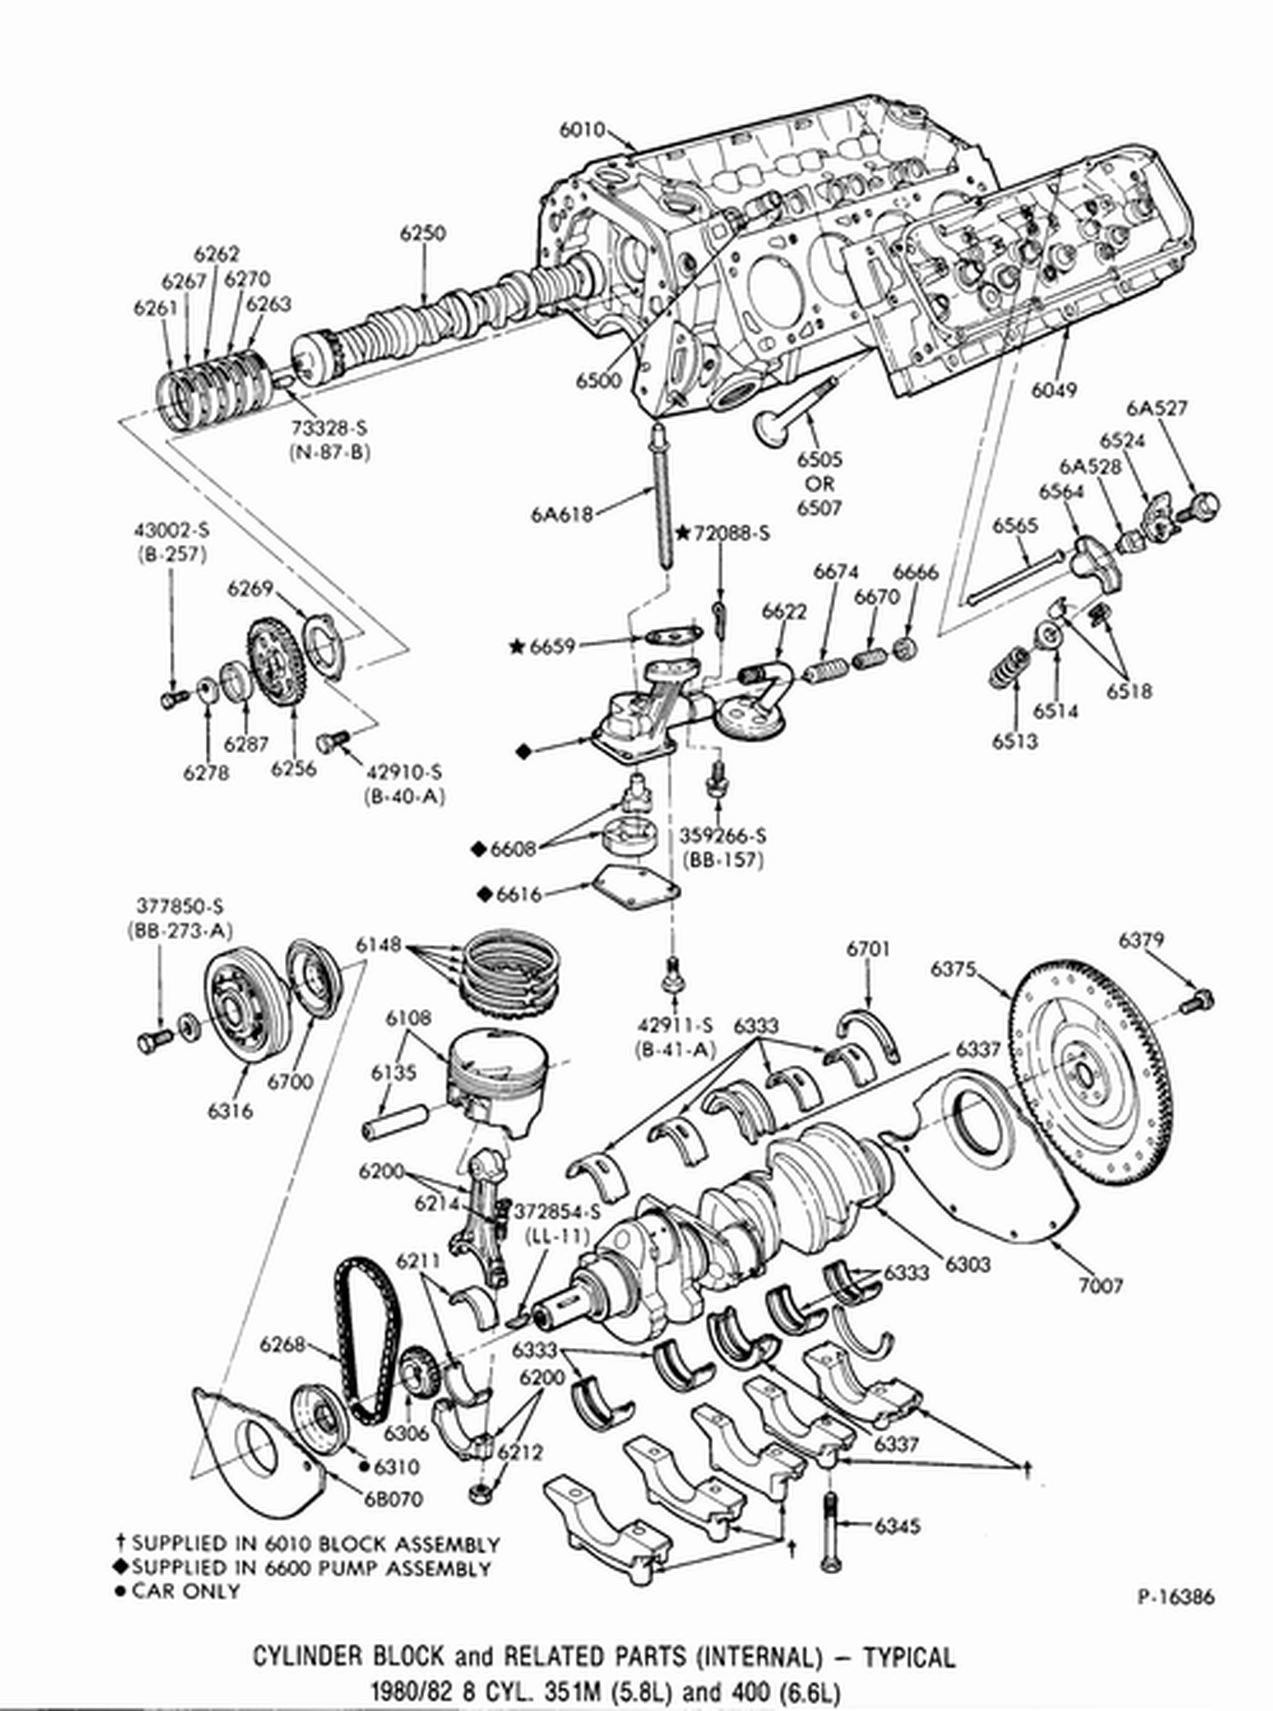 ford 351 engine diagram wiring diagrams trigg 351 windsor engine diagram [ 1273 x 1711 Pixel ]